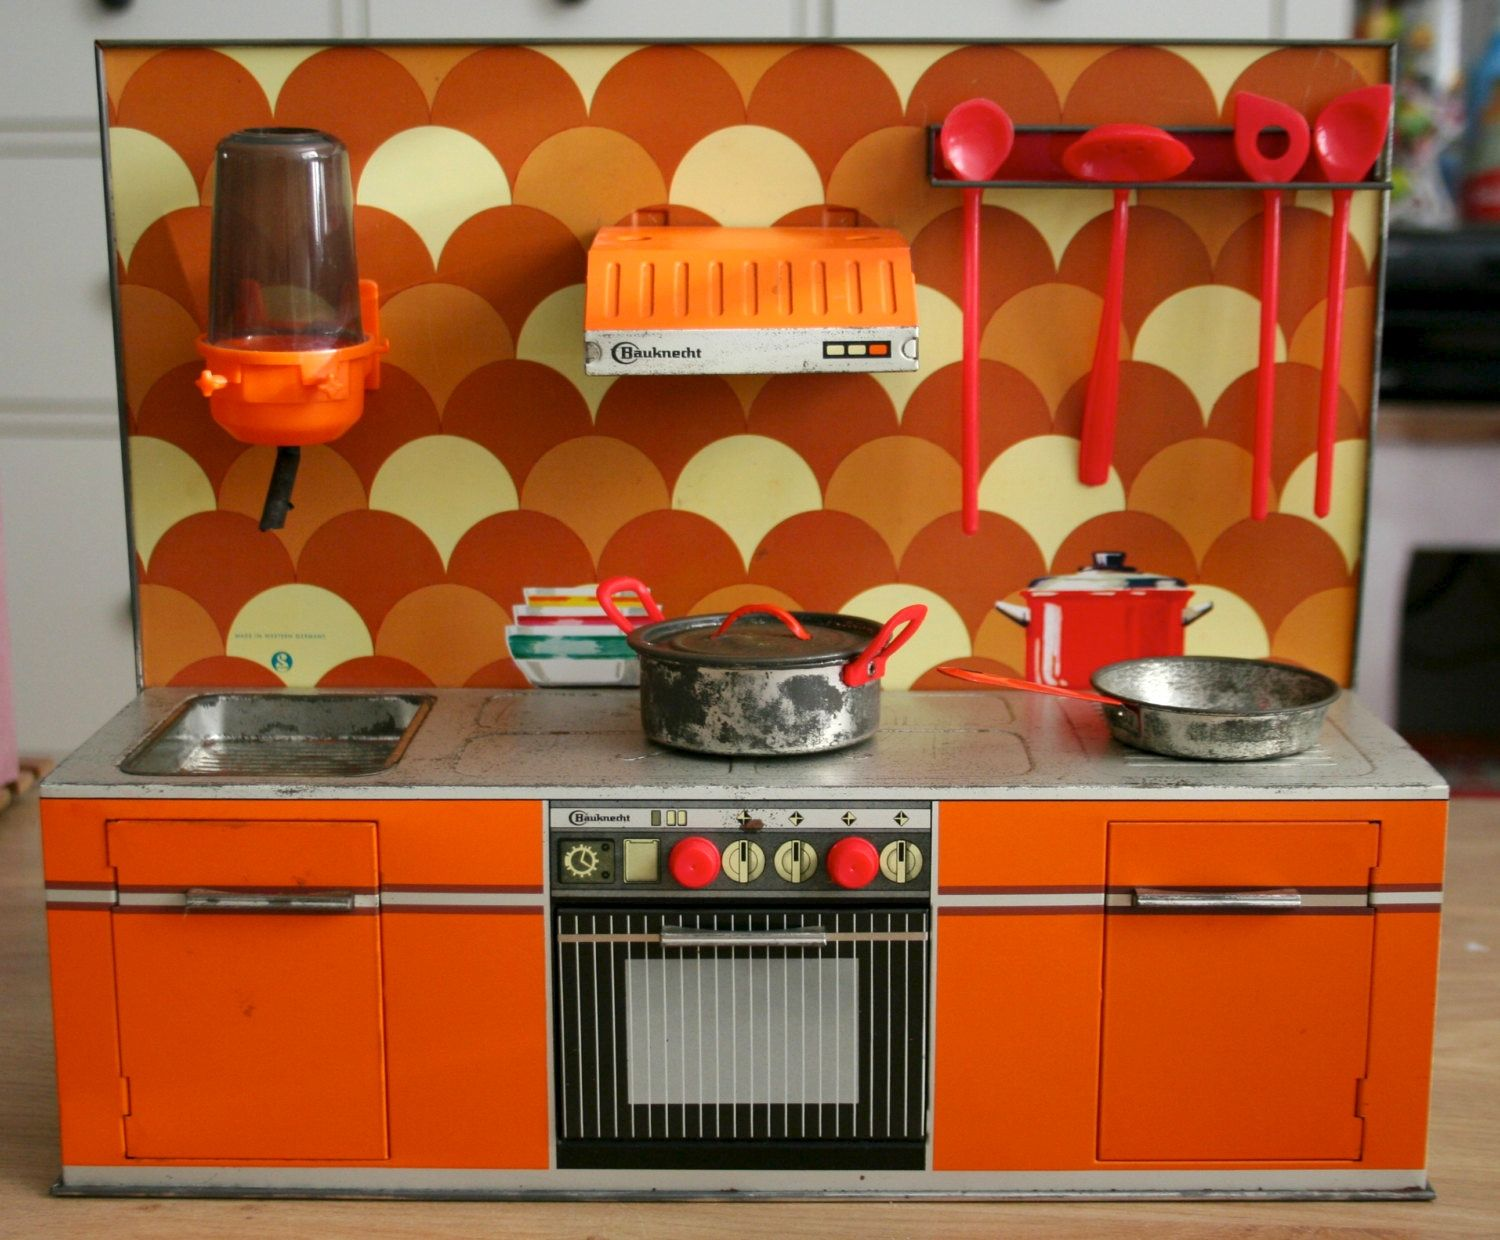 Kitchens in miniature